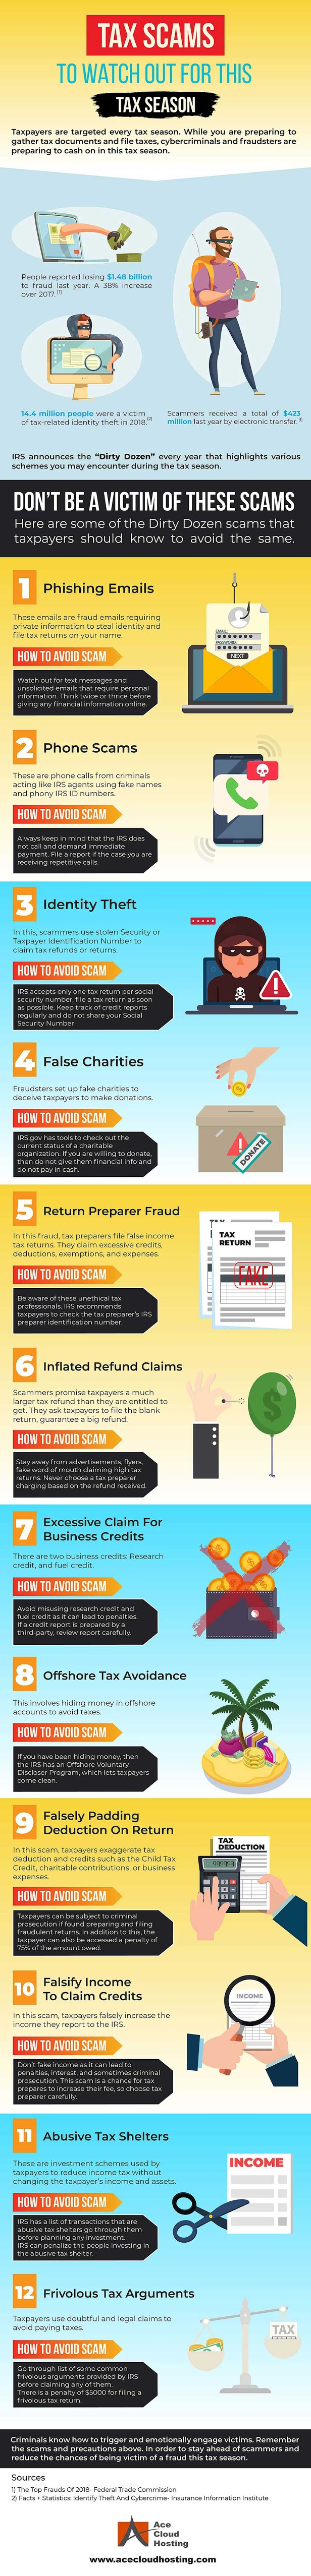 12 Tax Scams To Watch Out This Tax Season #infographic #Tax Scams #Scams #Tax Season #Crime